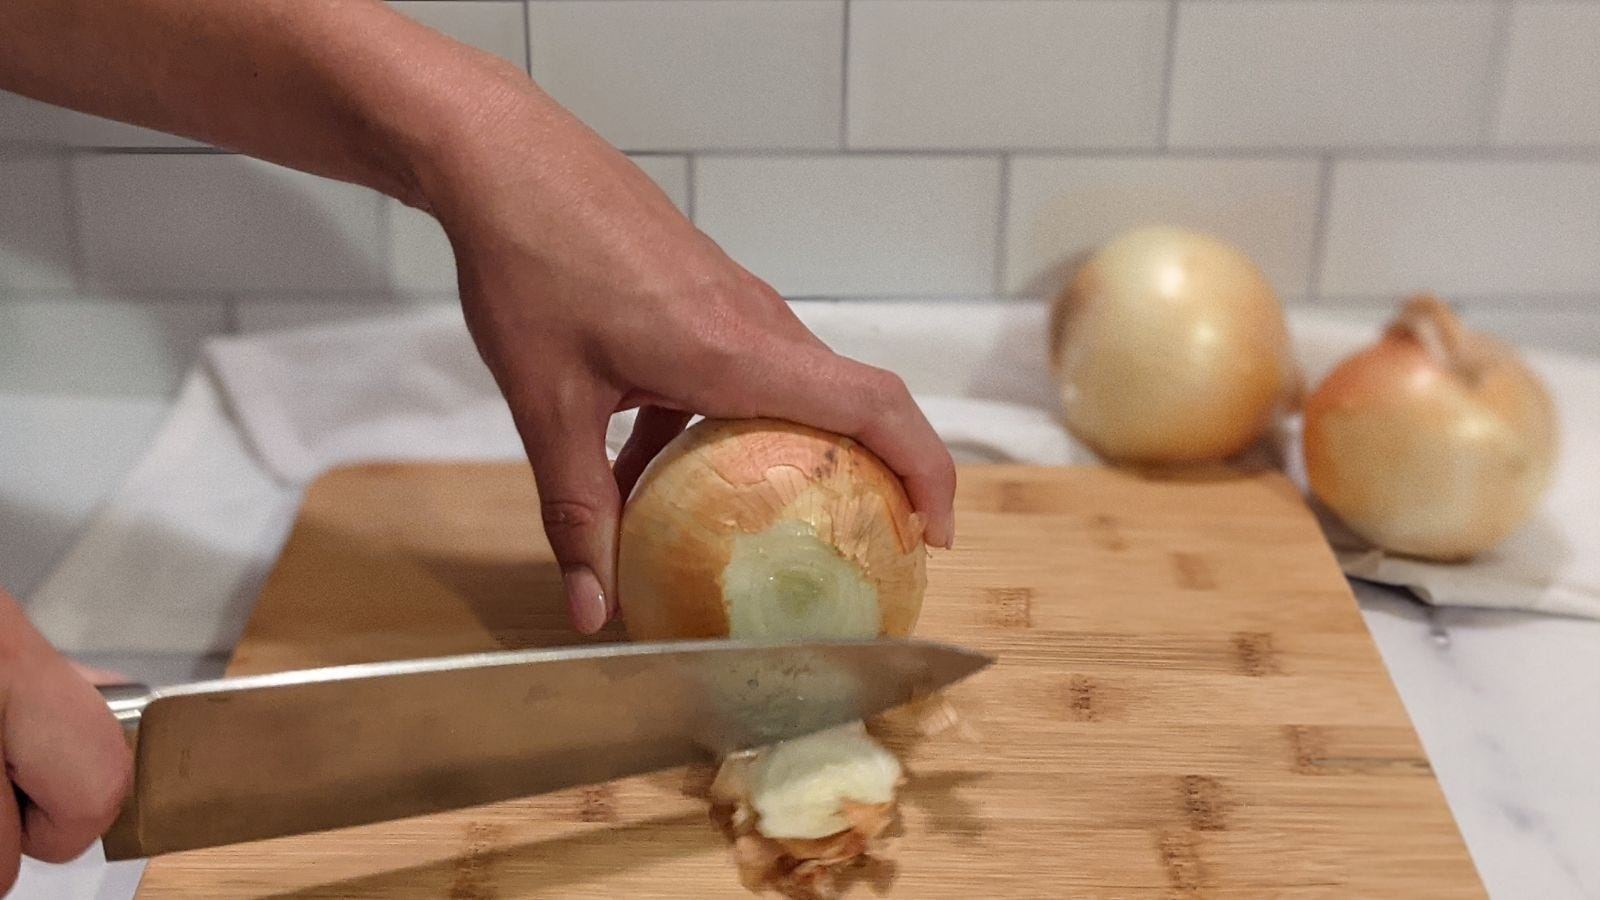 Slicing the stem of an onion off.